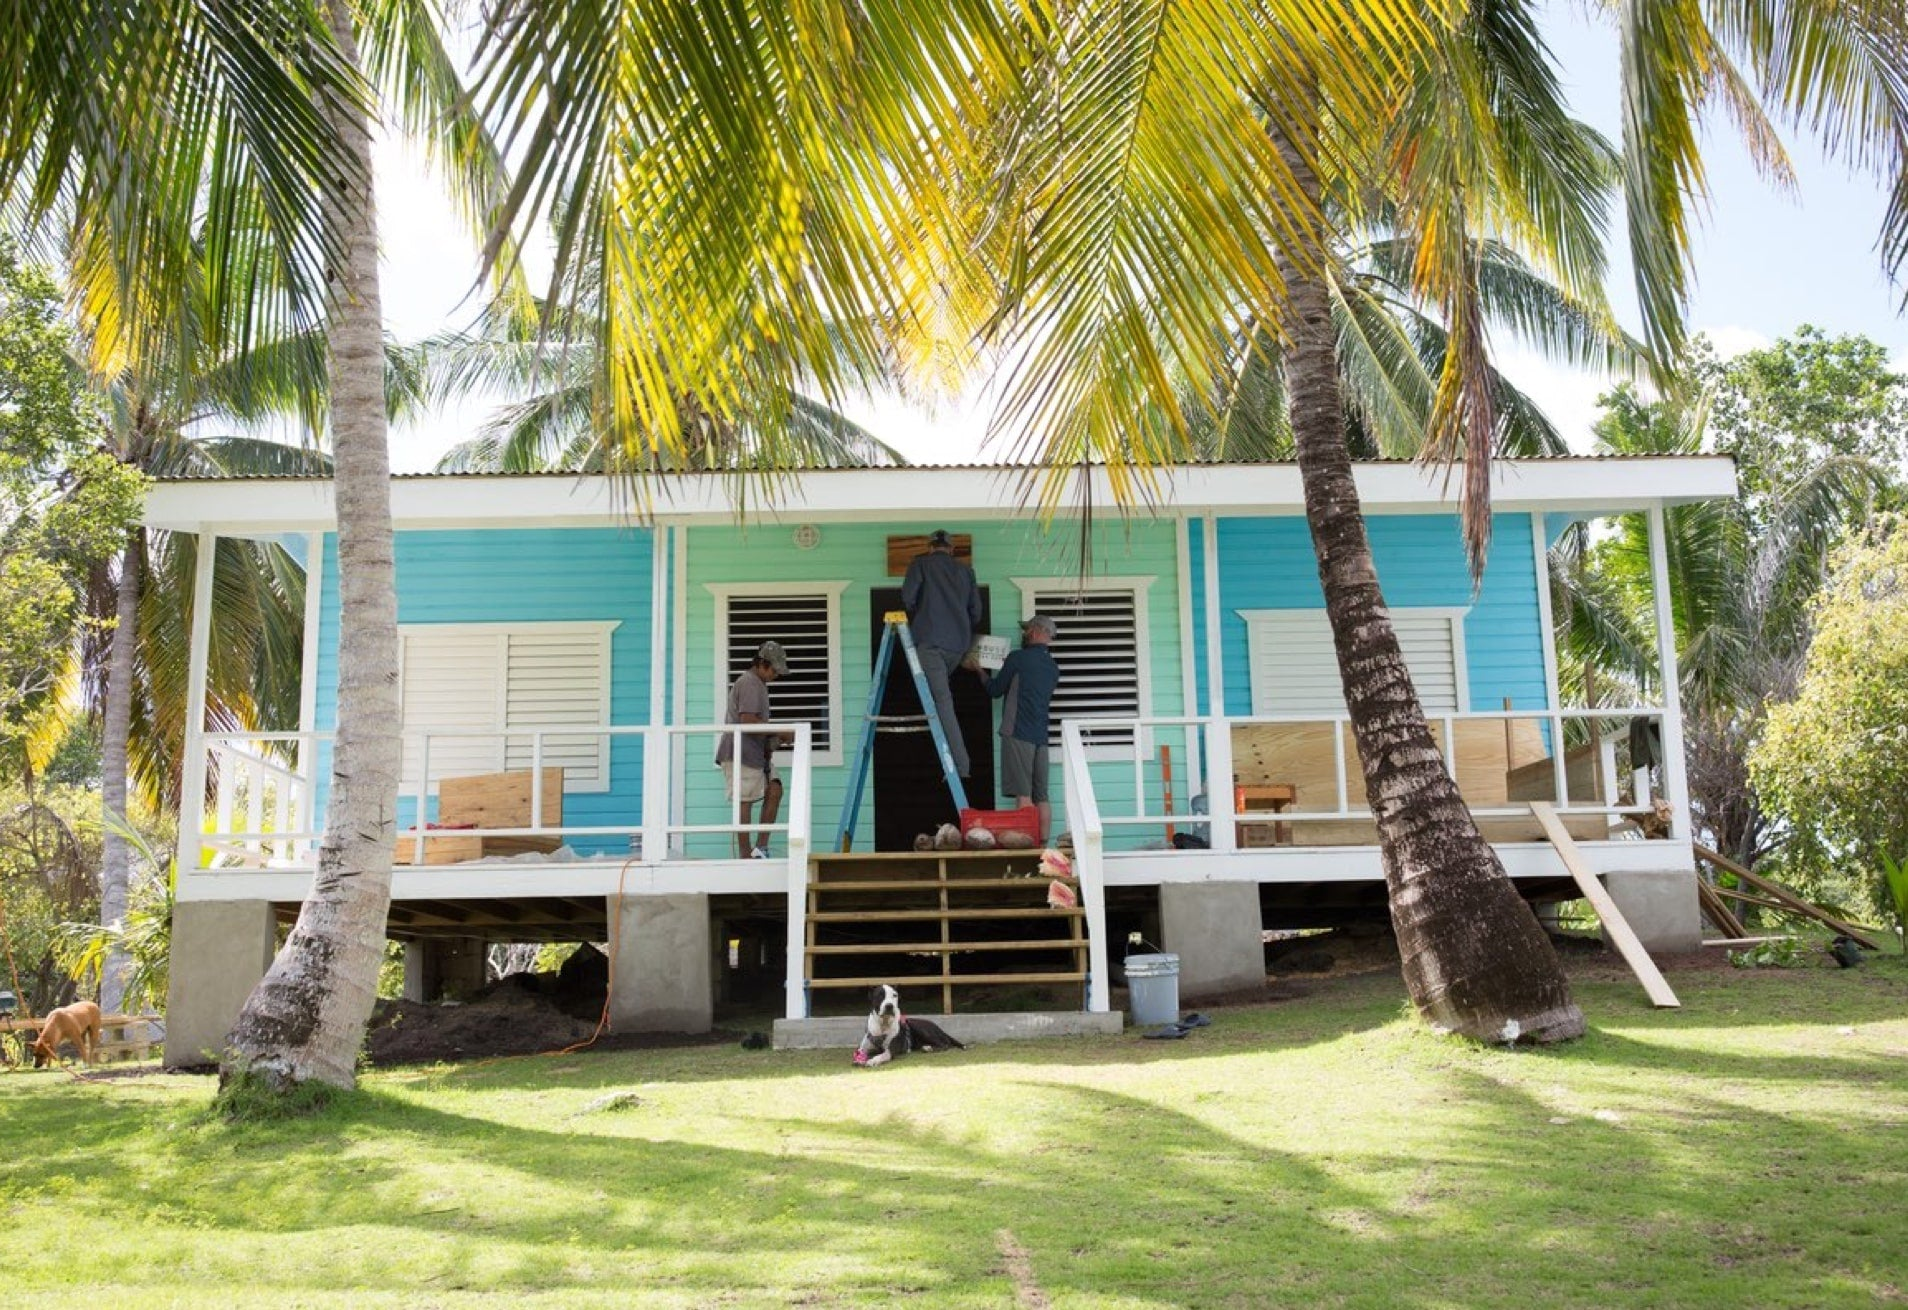 Putting the final touches on the BOTE House Belize